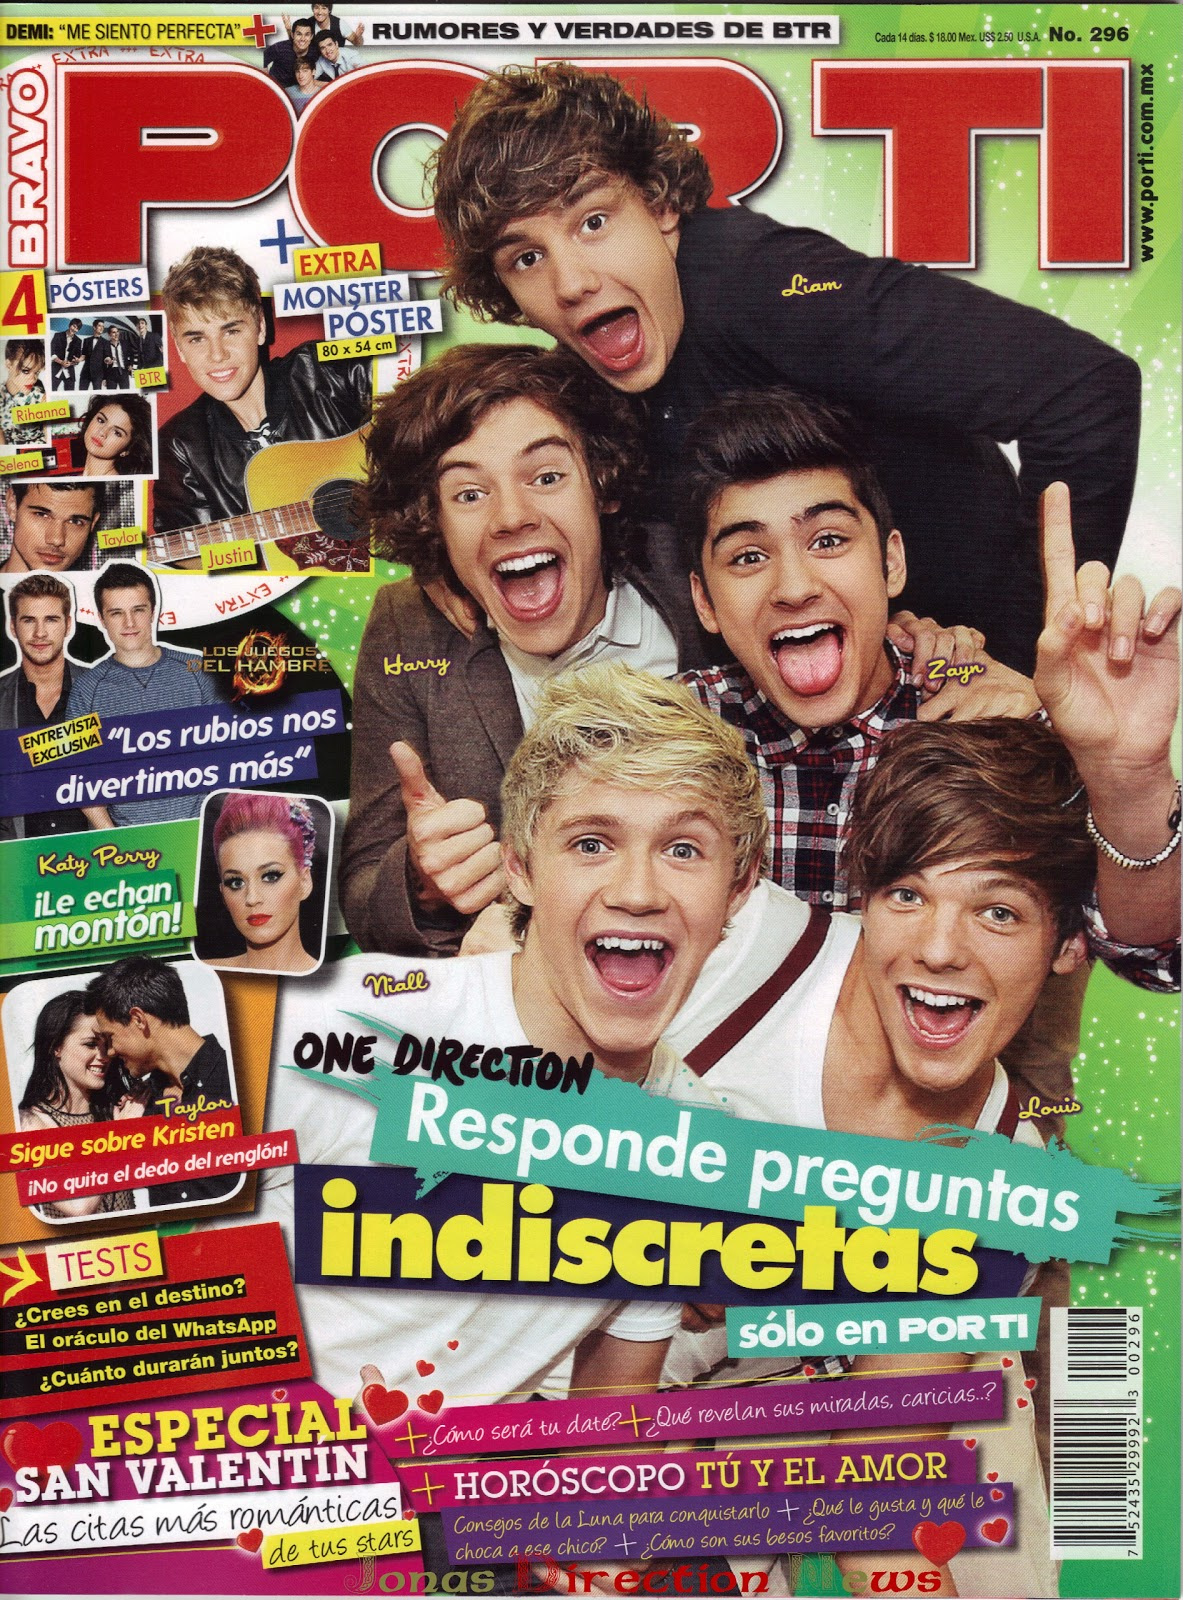 Jonas| Direction| News: One Direction en la revista Por Ti, México